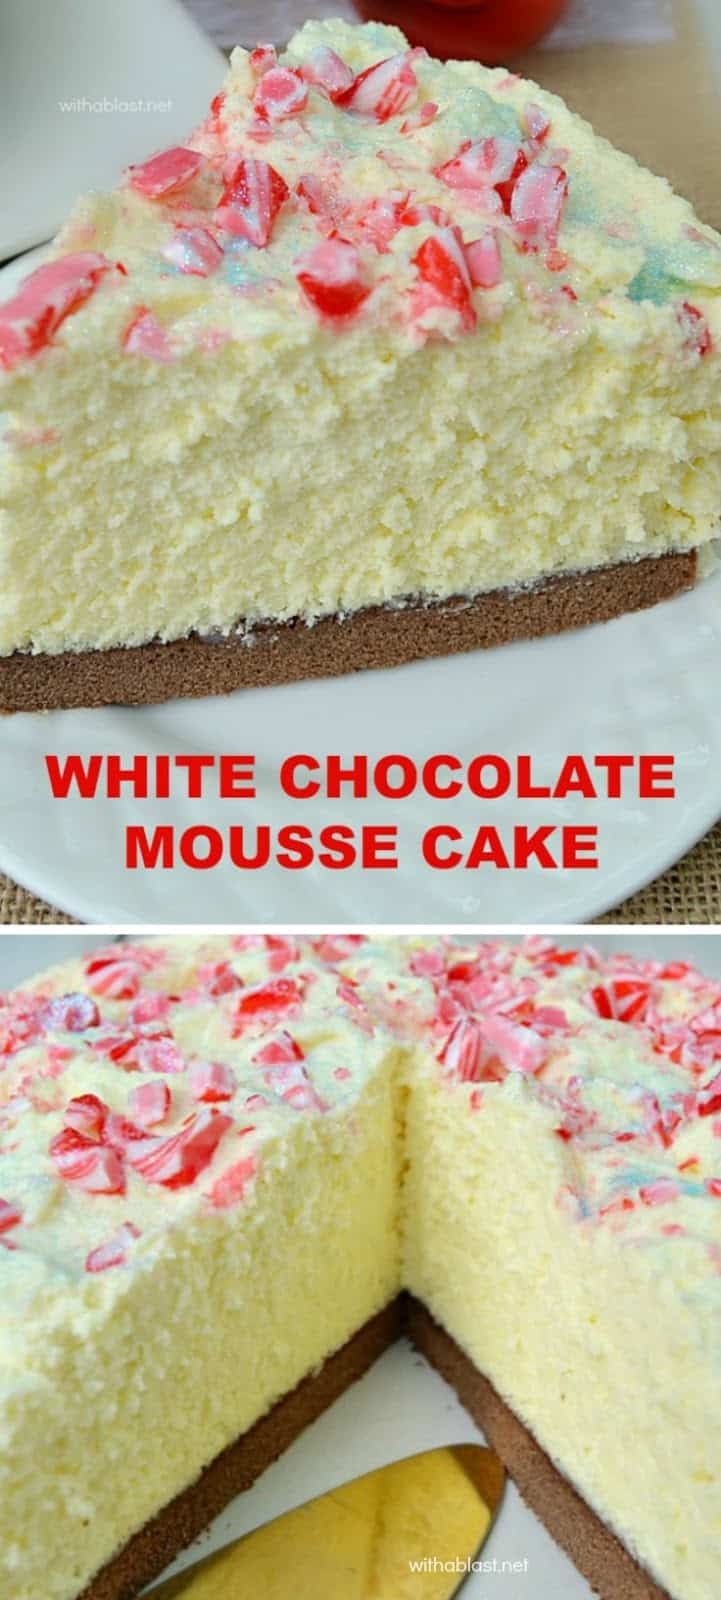 White Chocolate Mousse Cake has a chewy Cake base, creamy Mousse and a taste which will blow you away ~ make-ahead friendly recipe #Mousse #MousseCake #WhiteChocolateMousse #WhiteChocolateDessert #HolidayDessert #HolidayCake